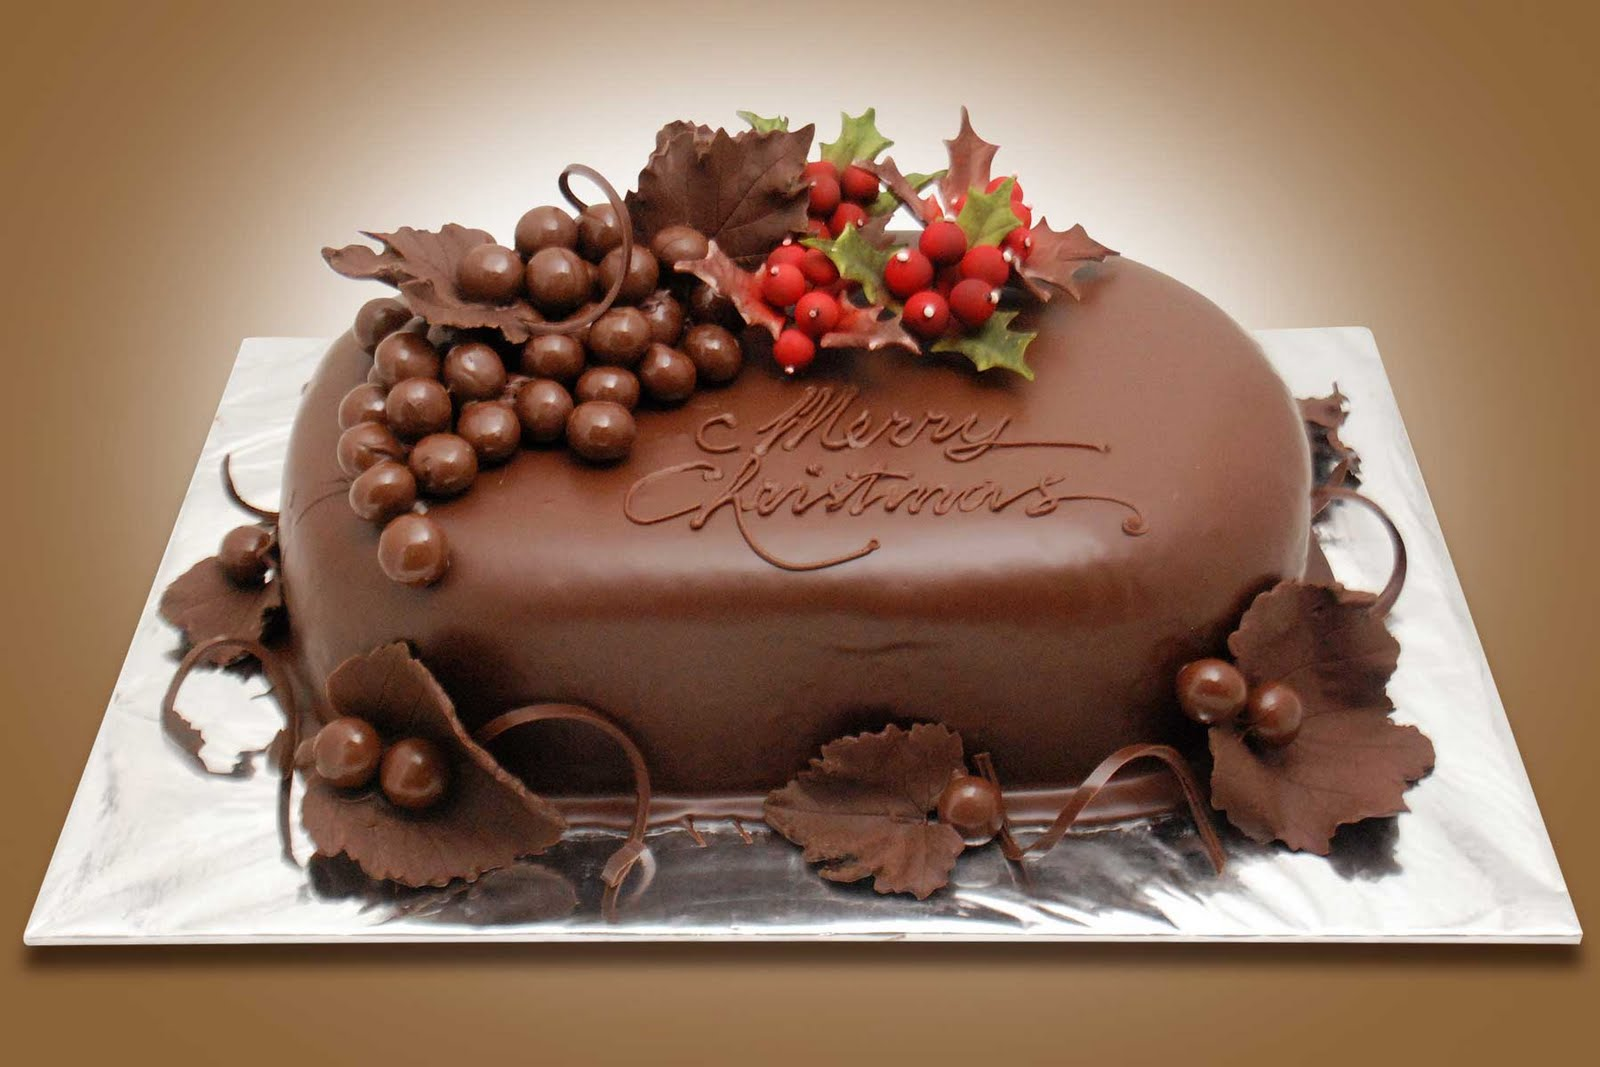 Cake Art South Penrith : 1000+ images about Chocolate Cakes & Pastries on Pinterest ...